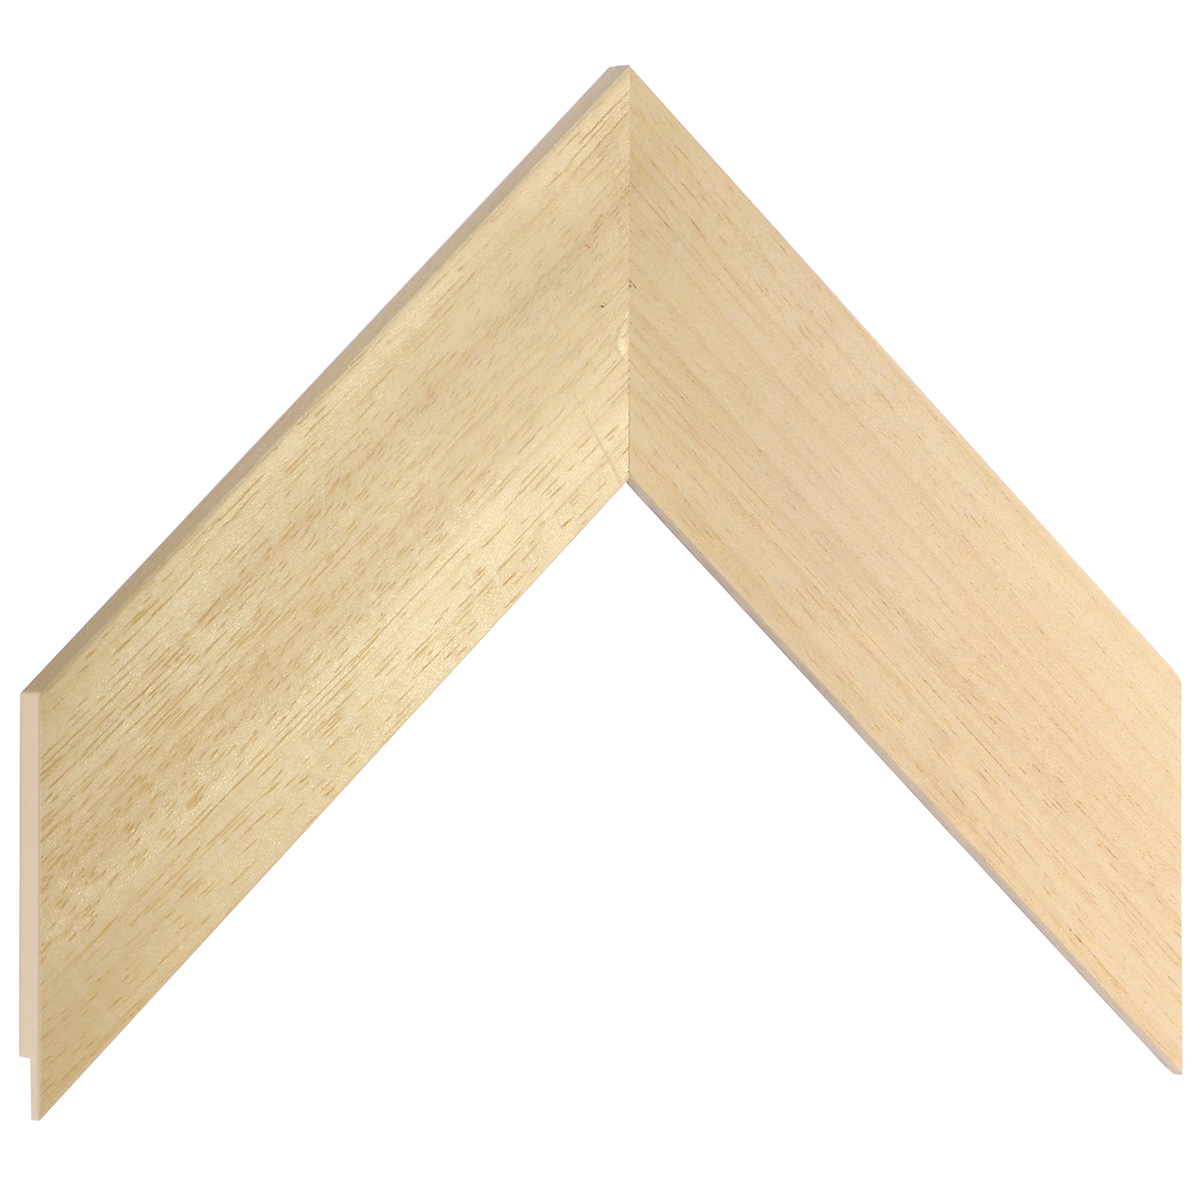 Moulding ayous, width 50mm, height 10mm, bare timber